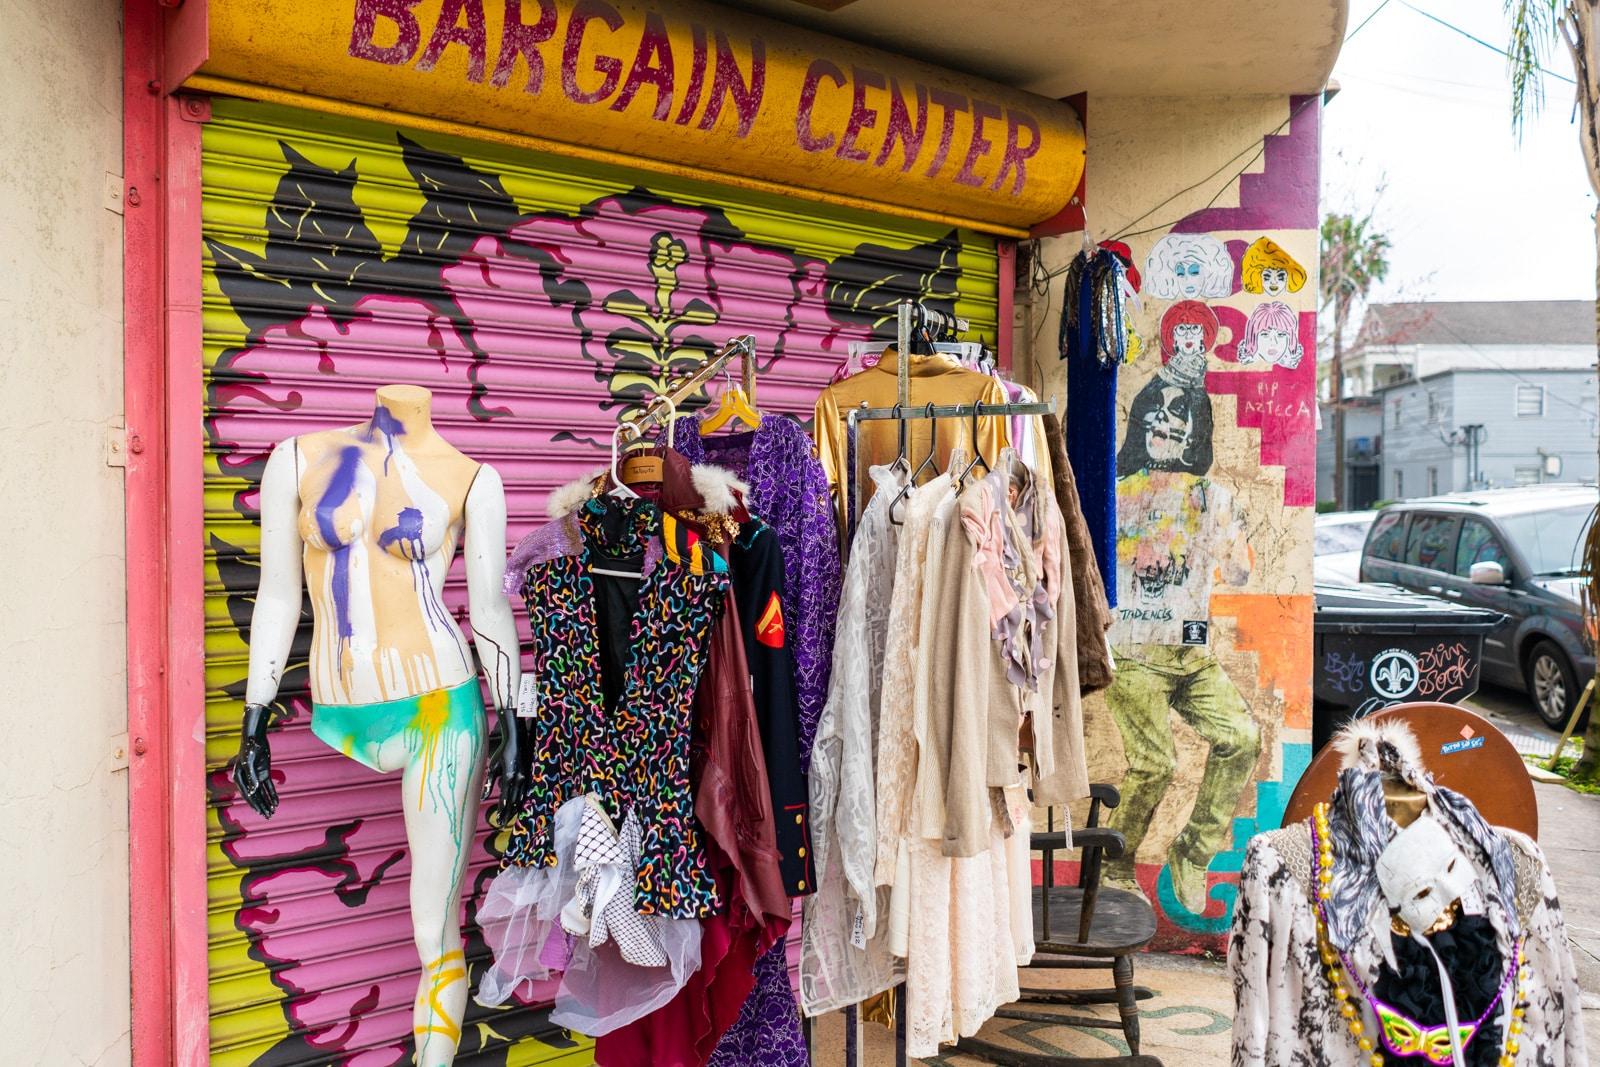 Mardi Gras costume clothes for sale in the Bywater neighborhood of New Orleans